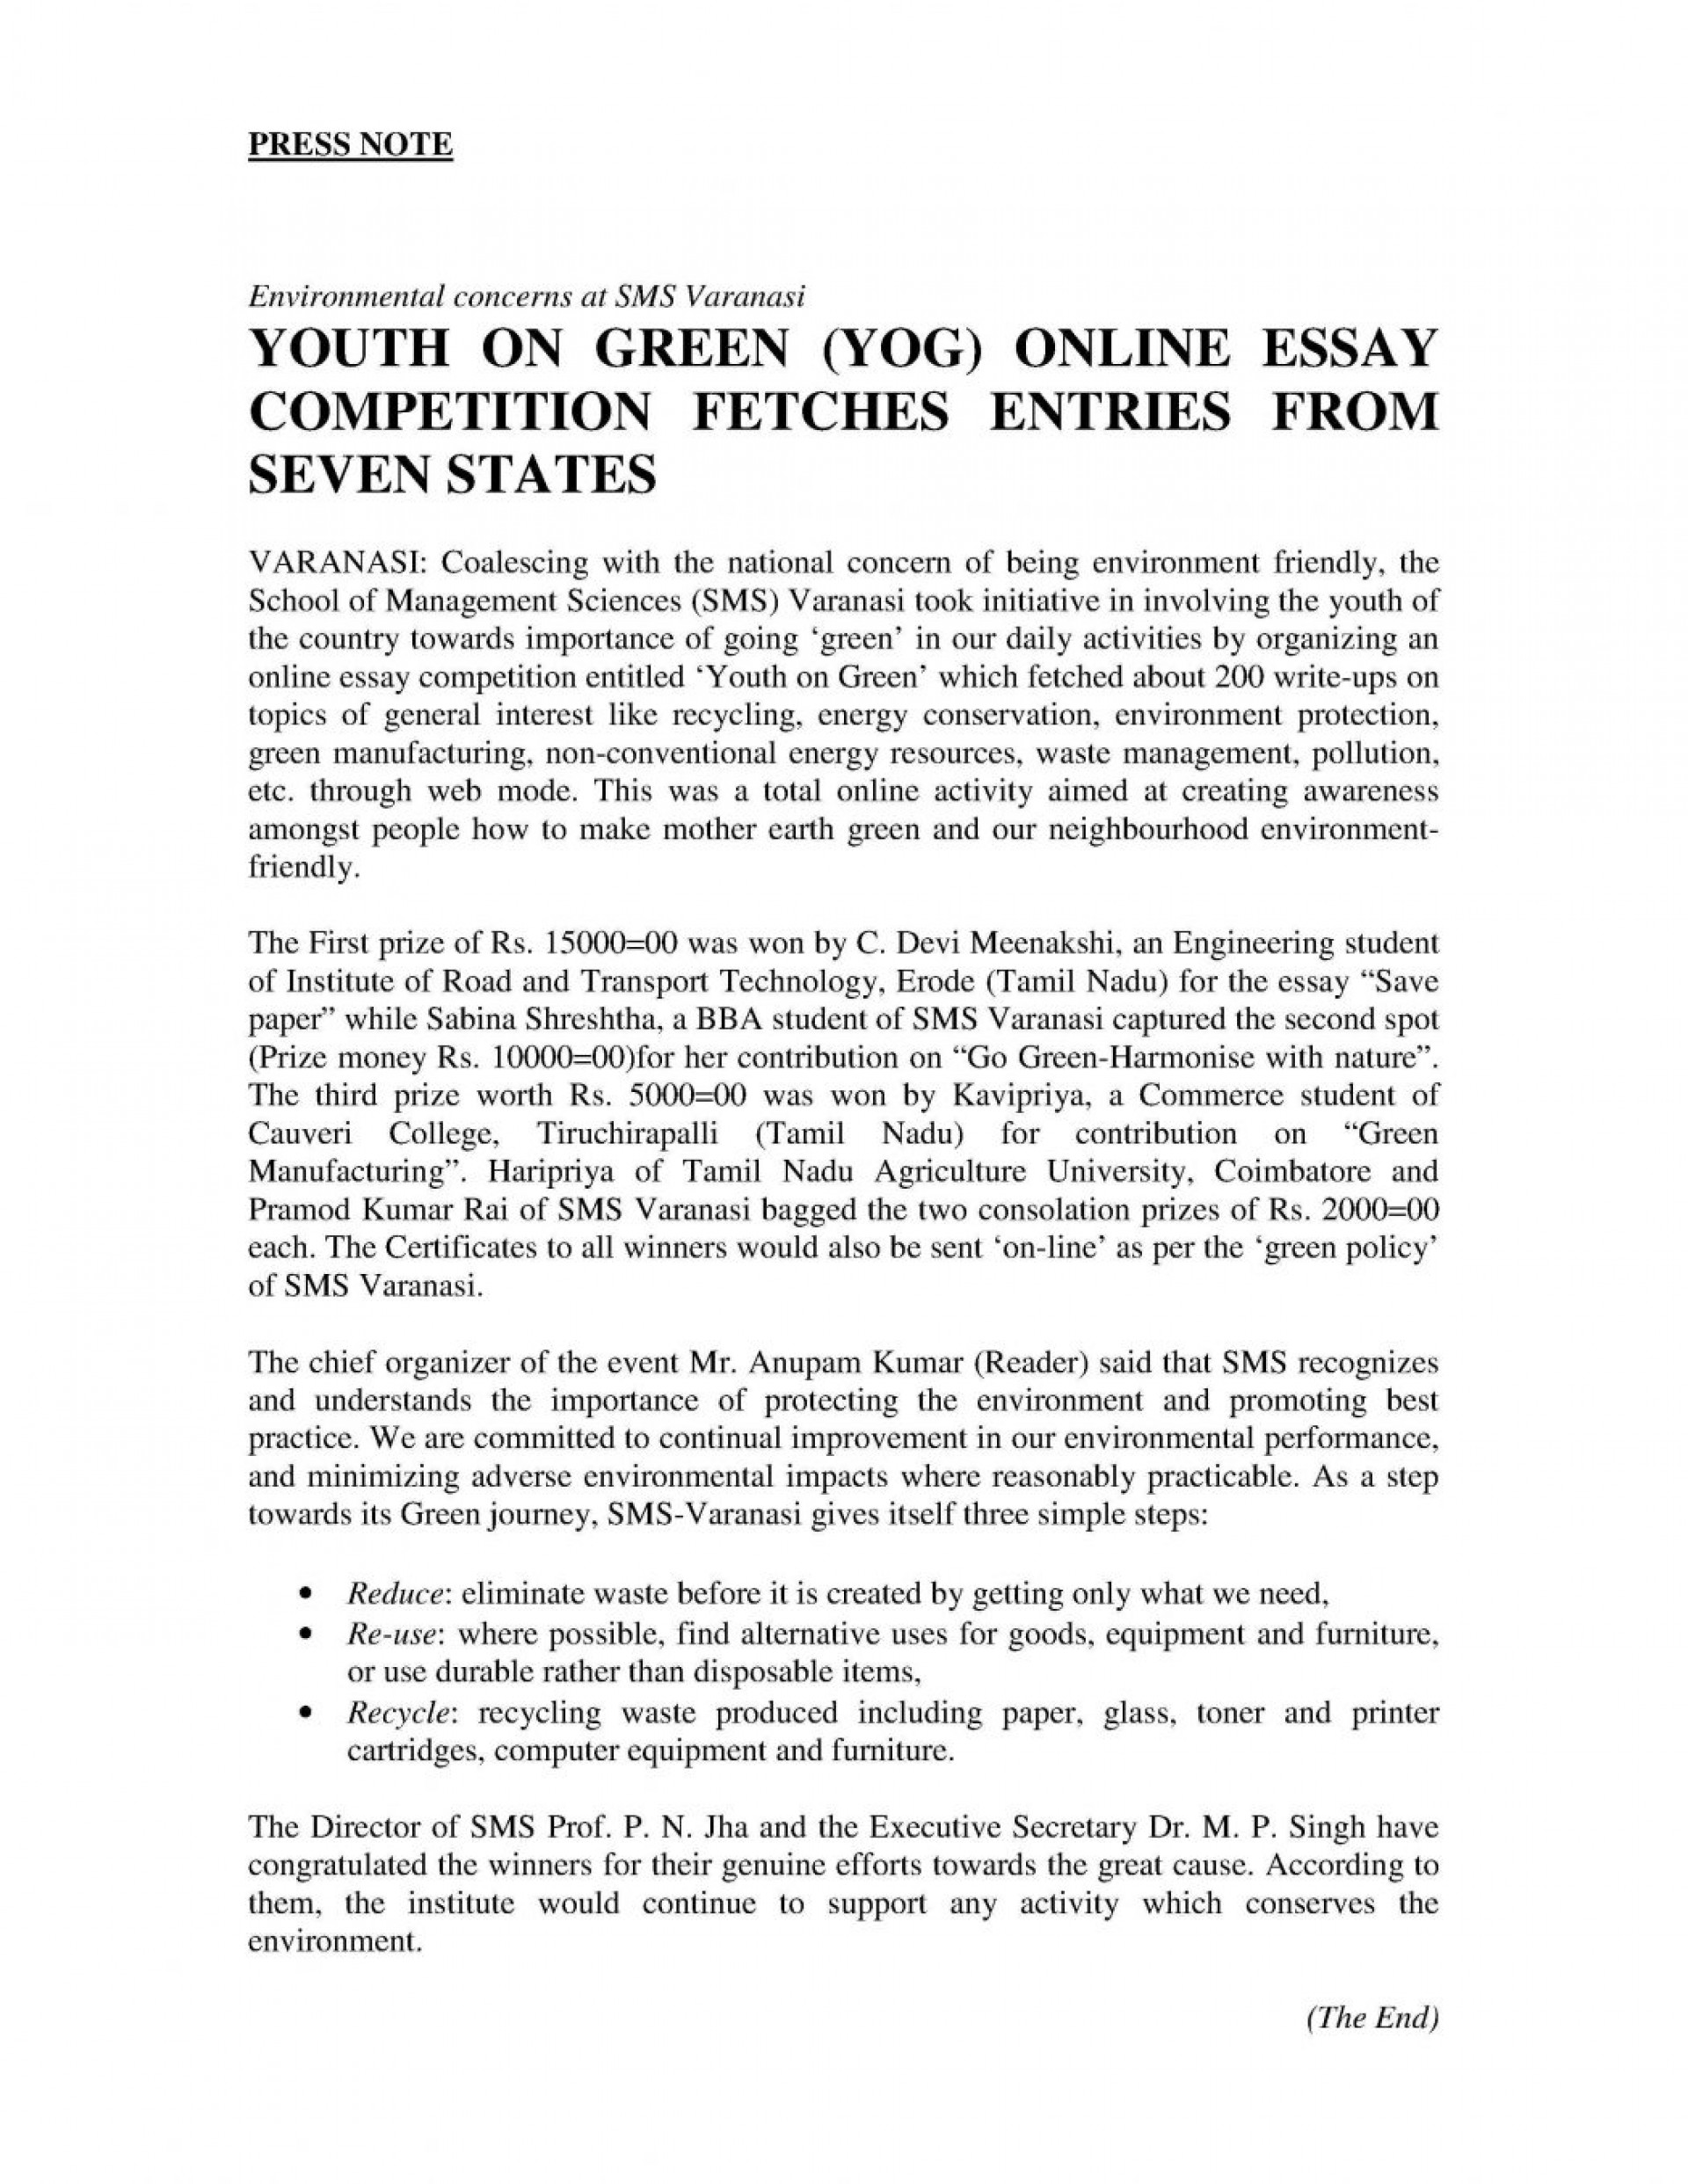 020 Best Essays For College Essay On Good Habits How Tot Application Online Yog Press Re About Yourself Examples Your Background Failure Prompt Off Hook 1048x1356 Example Amazing To Start An A Definition With Quote 1920